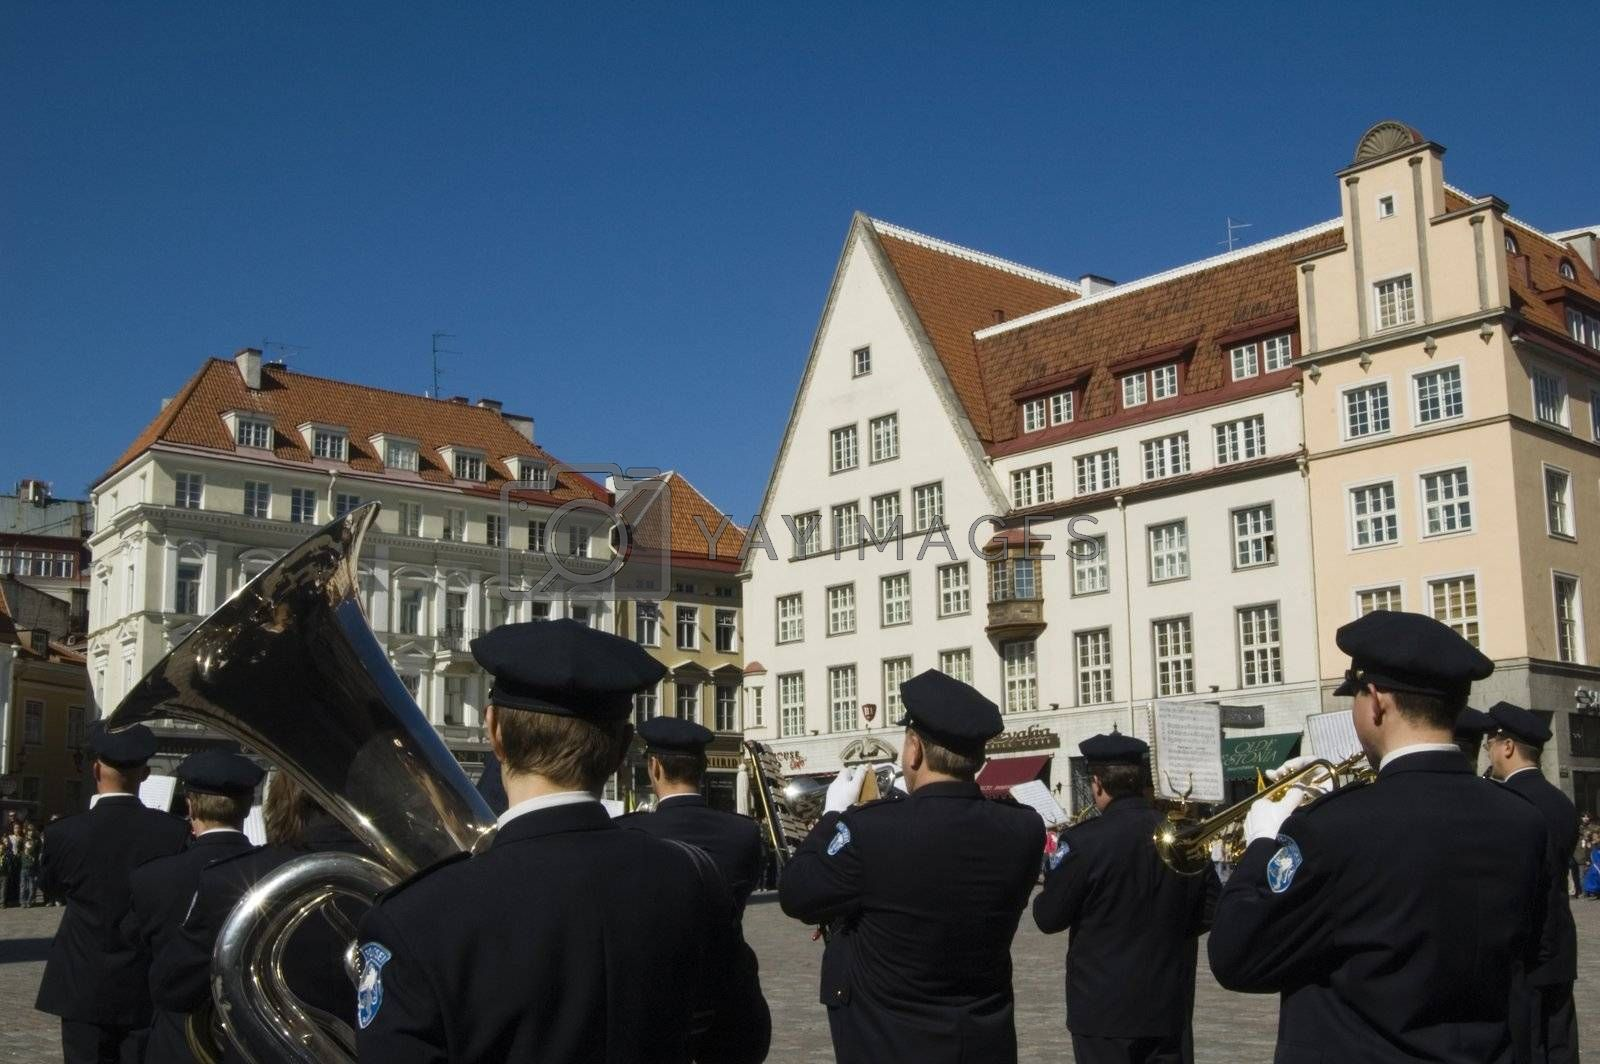 Plays a police orchestra in Tallinn